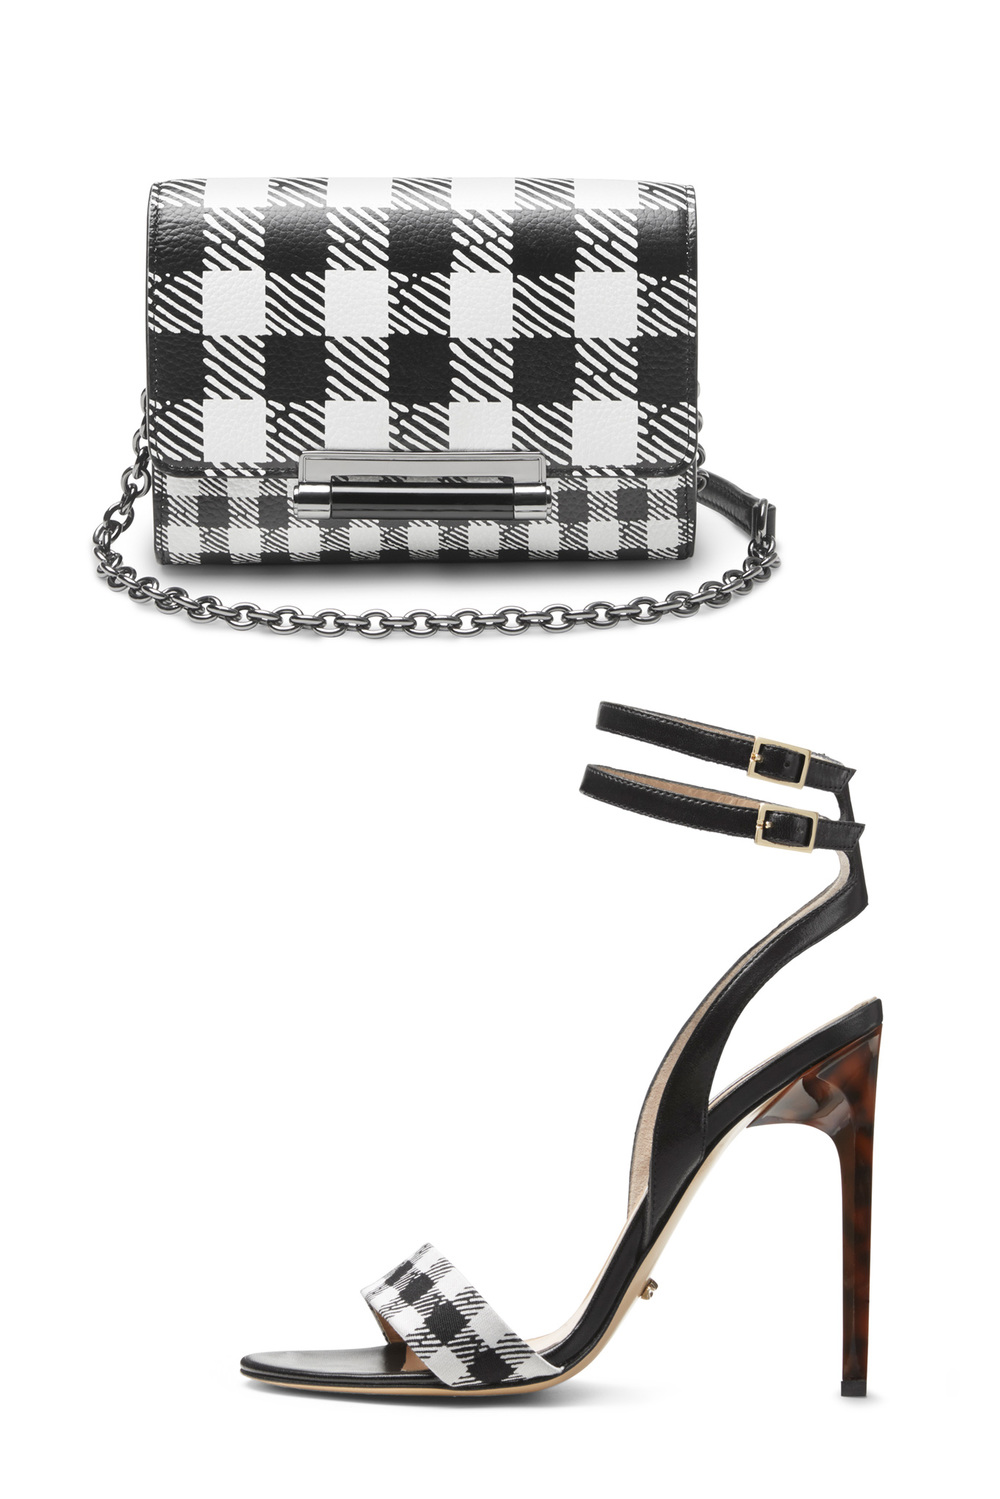 04-02-gingham-spring-shopping-picks.jpg